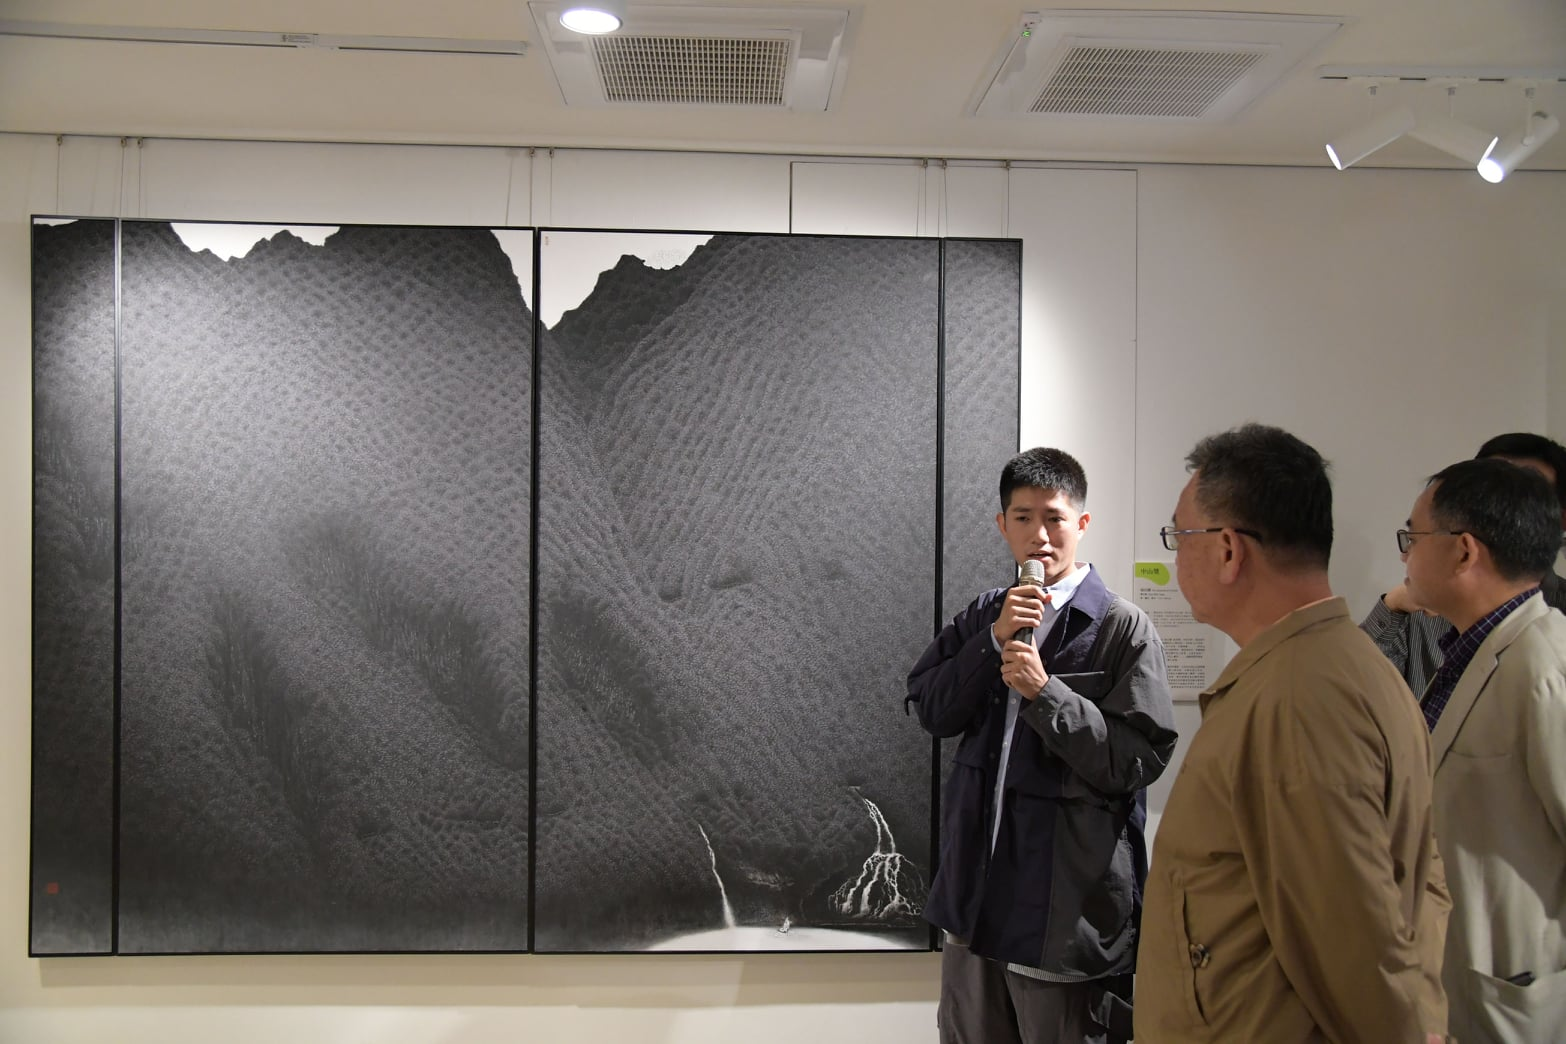 Penghu exhibition showcases winning works of Chung-shan Youth Art Awards